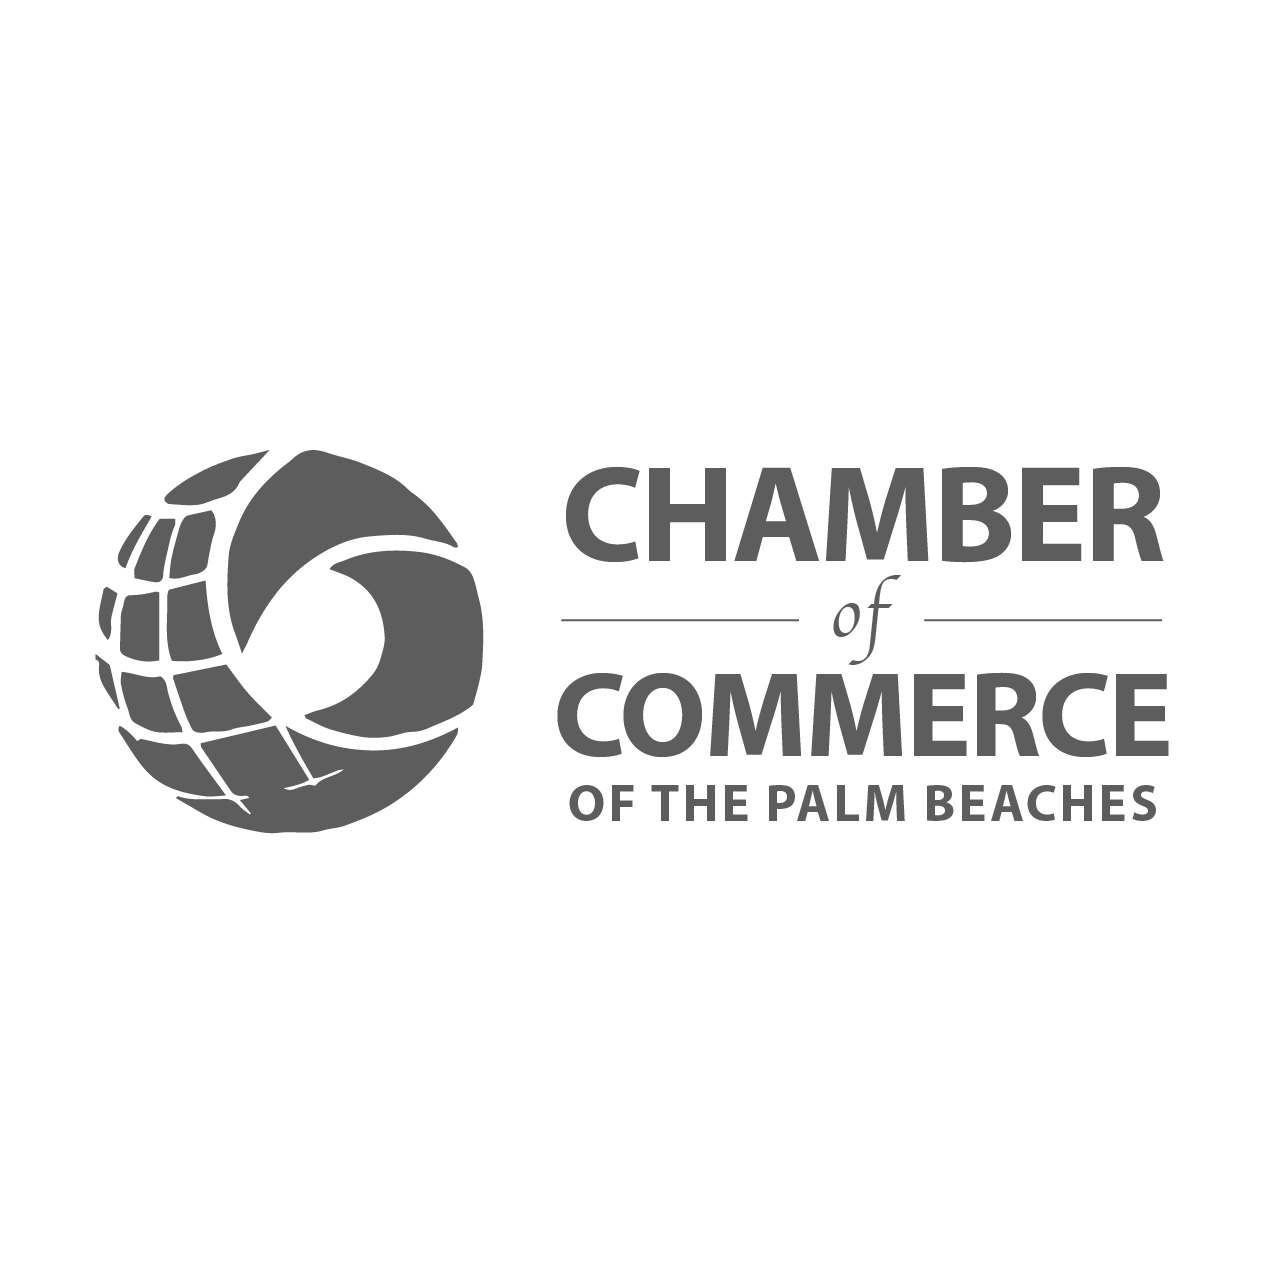 CHAMBER-OF-COMMERCE-PALM-BEACHES-COMMERCIAL-CLEANER-GREY-LGOO